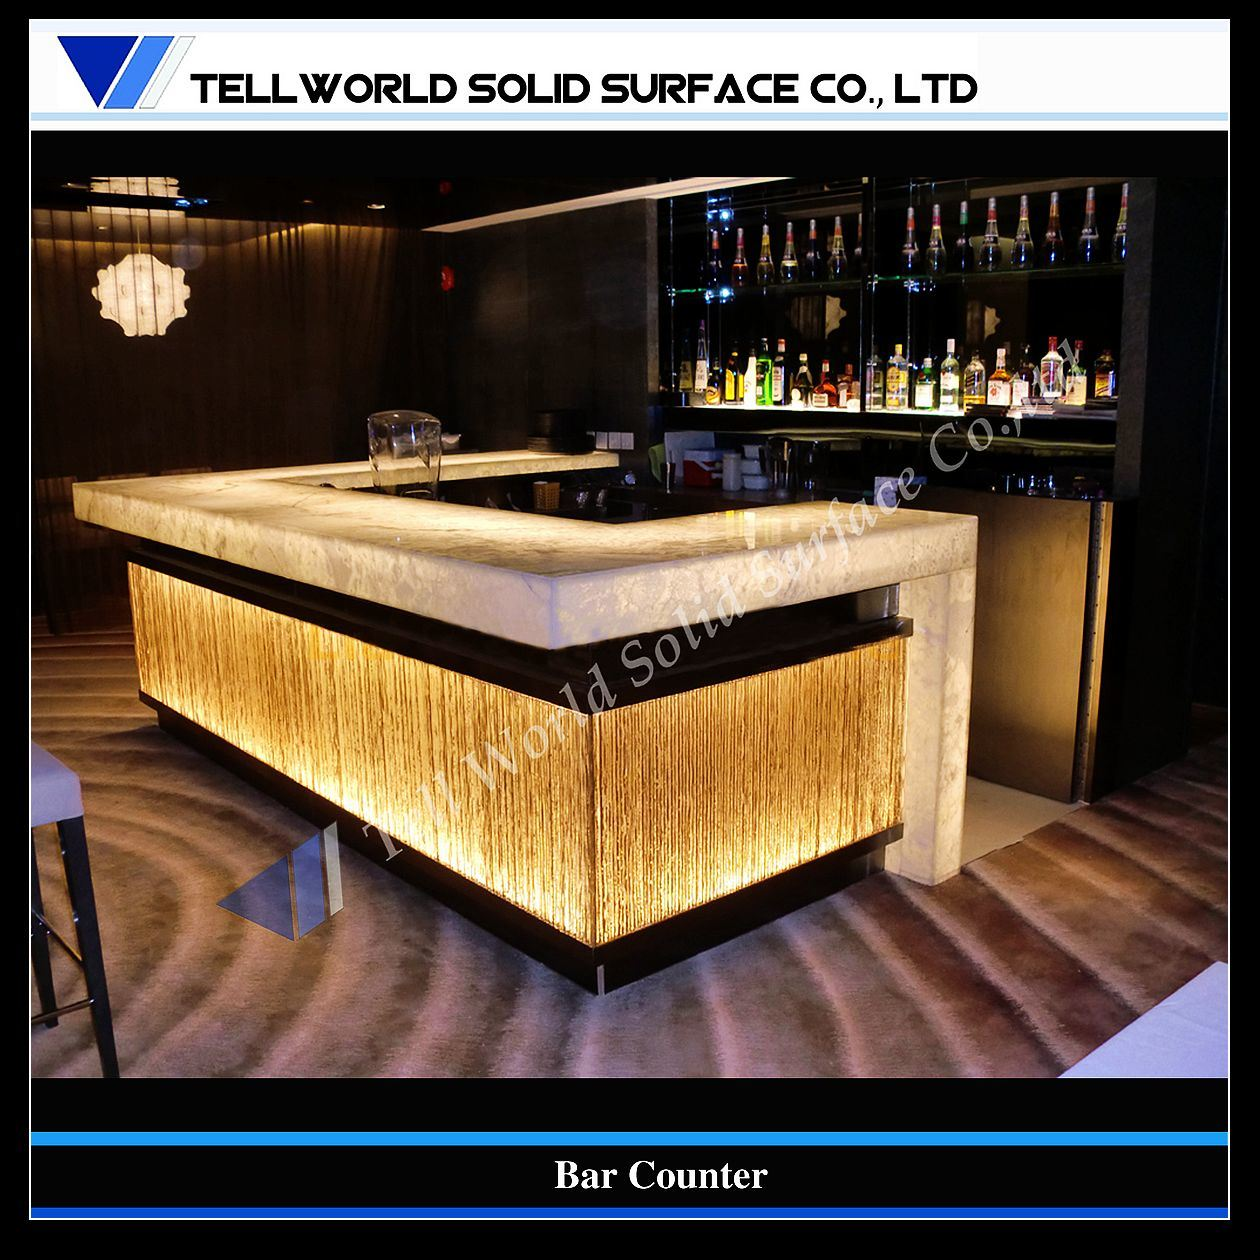 17 best images about counter bar on pinterest acrylics shenzhen and hong kong - Commercial Bar Design Ideas